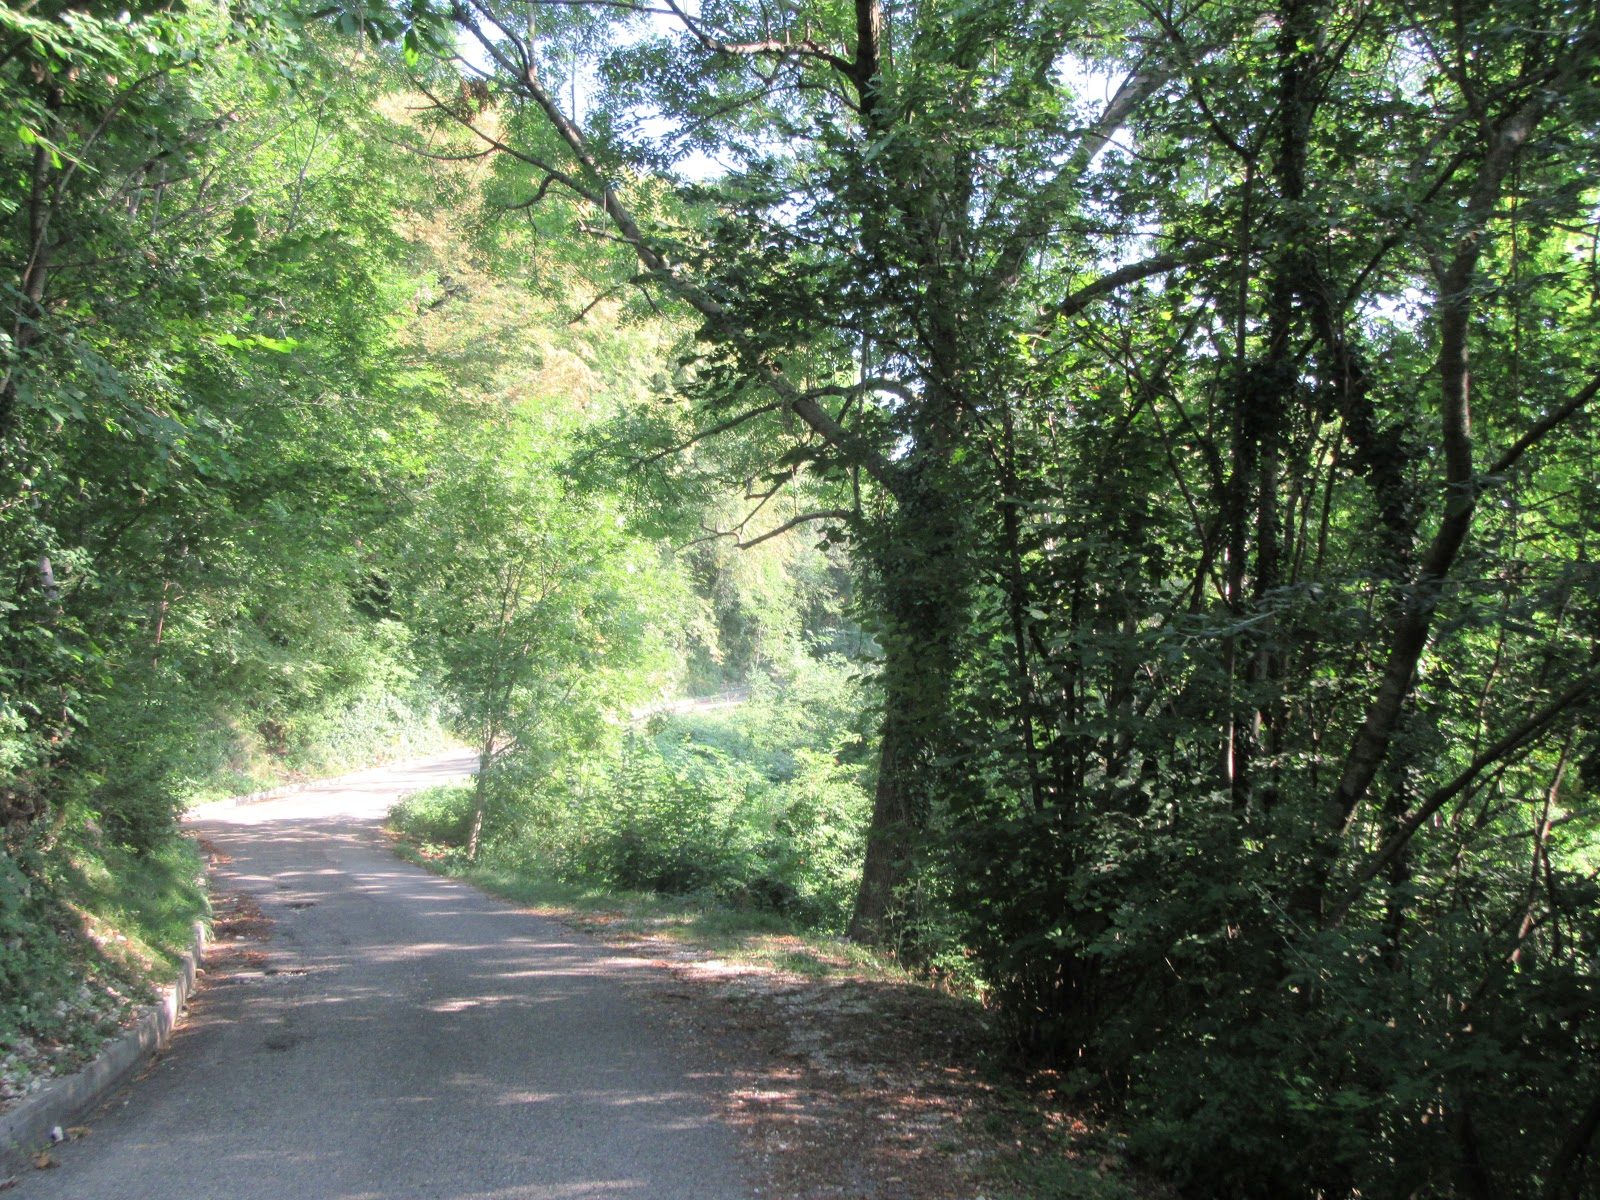 Bike climb of Monte Grappa from Possagno  - roadway surrounded by trees